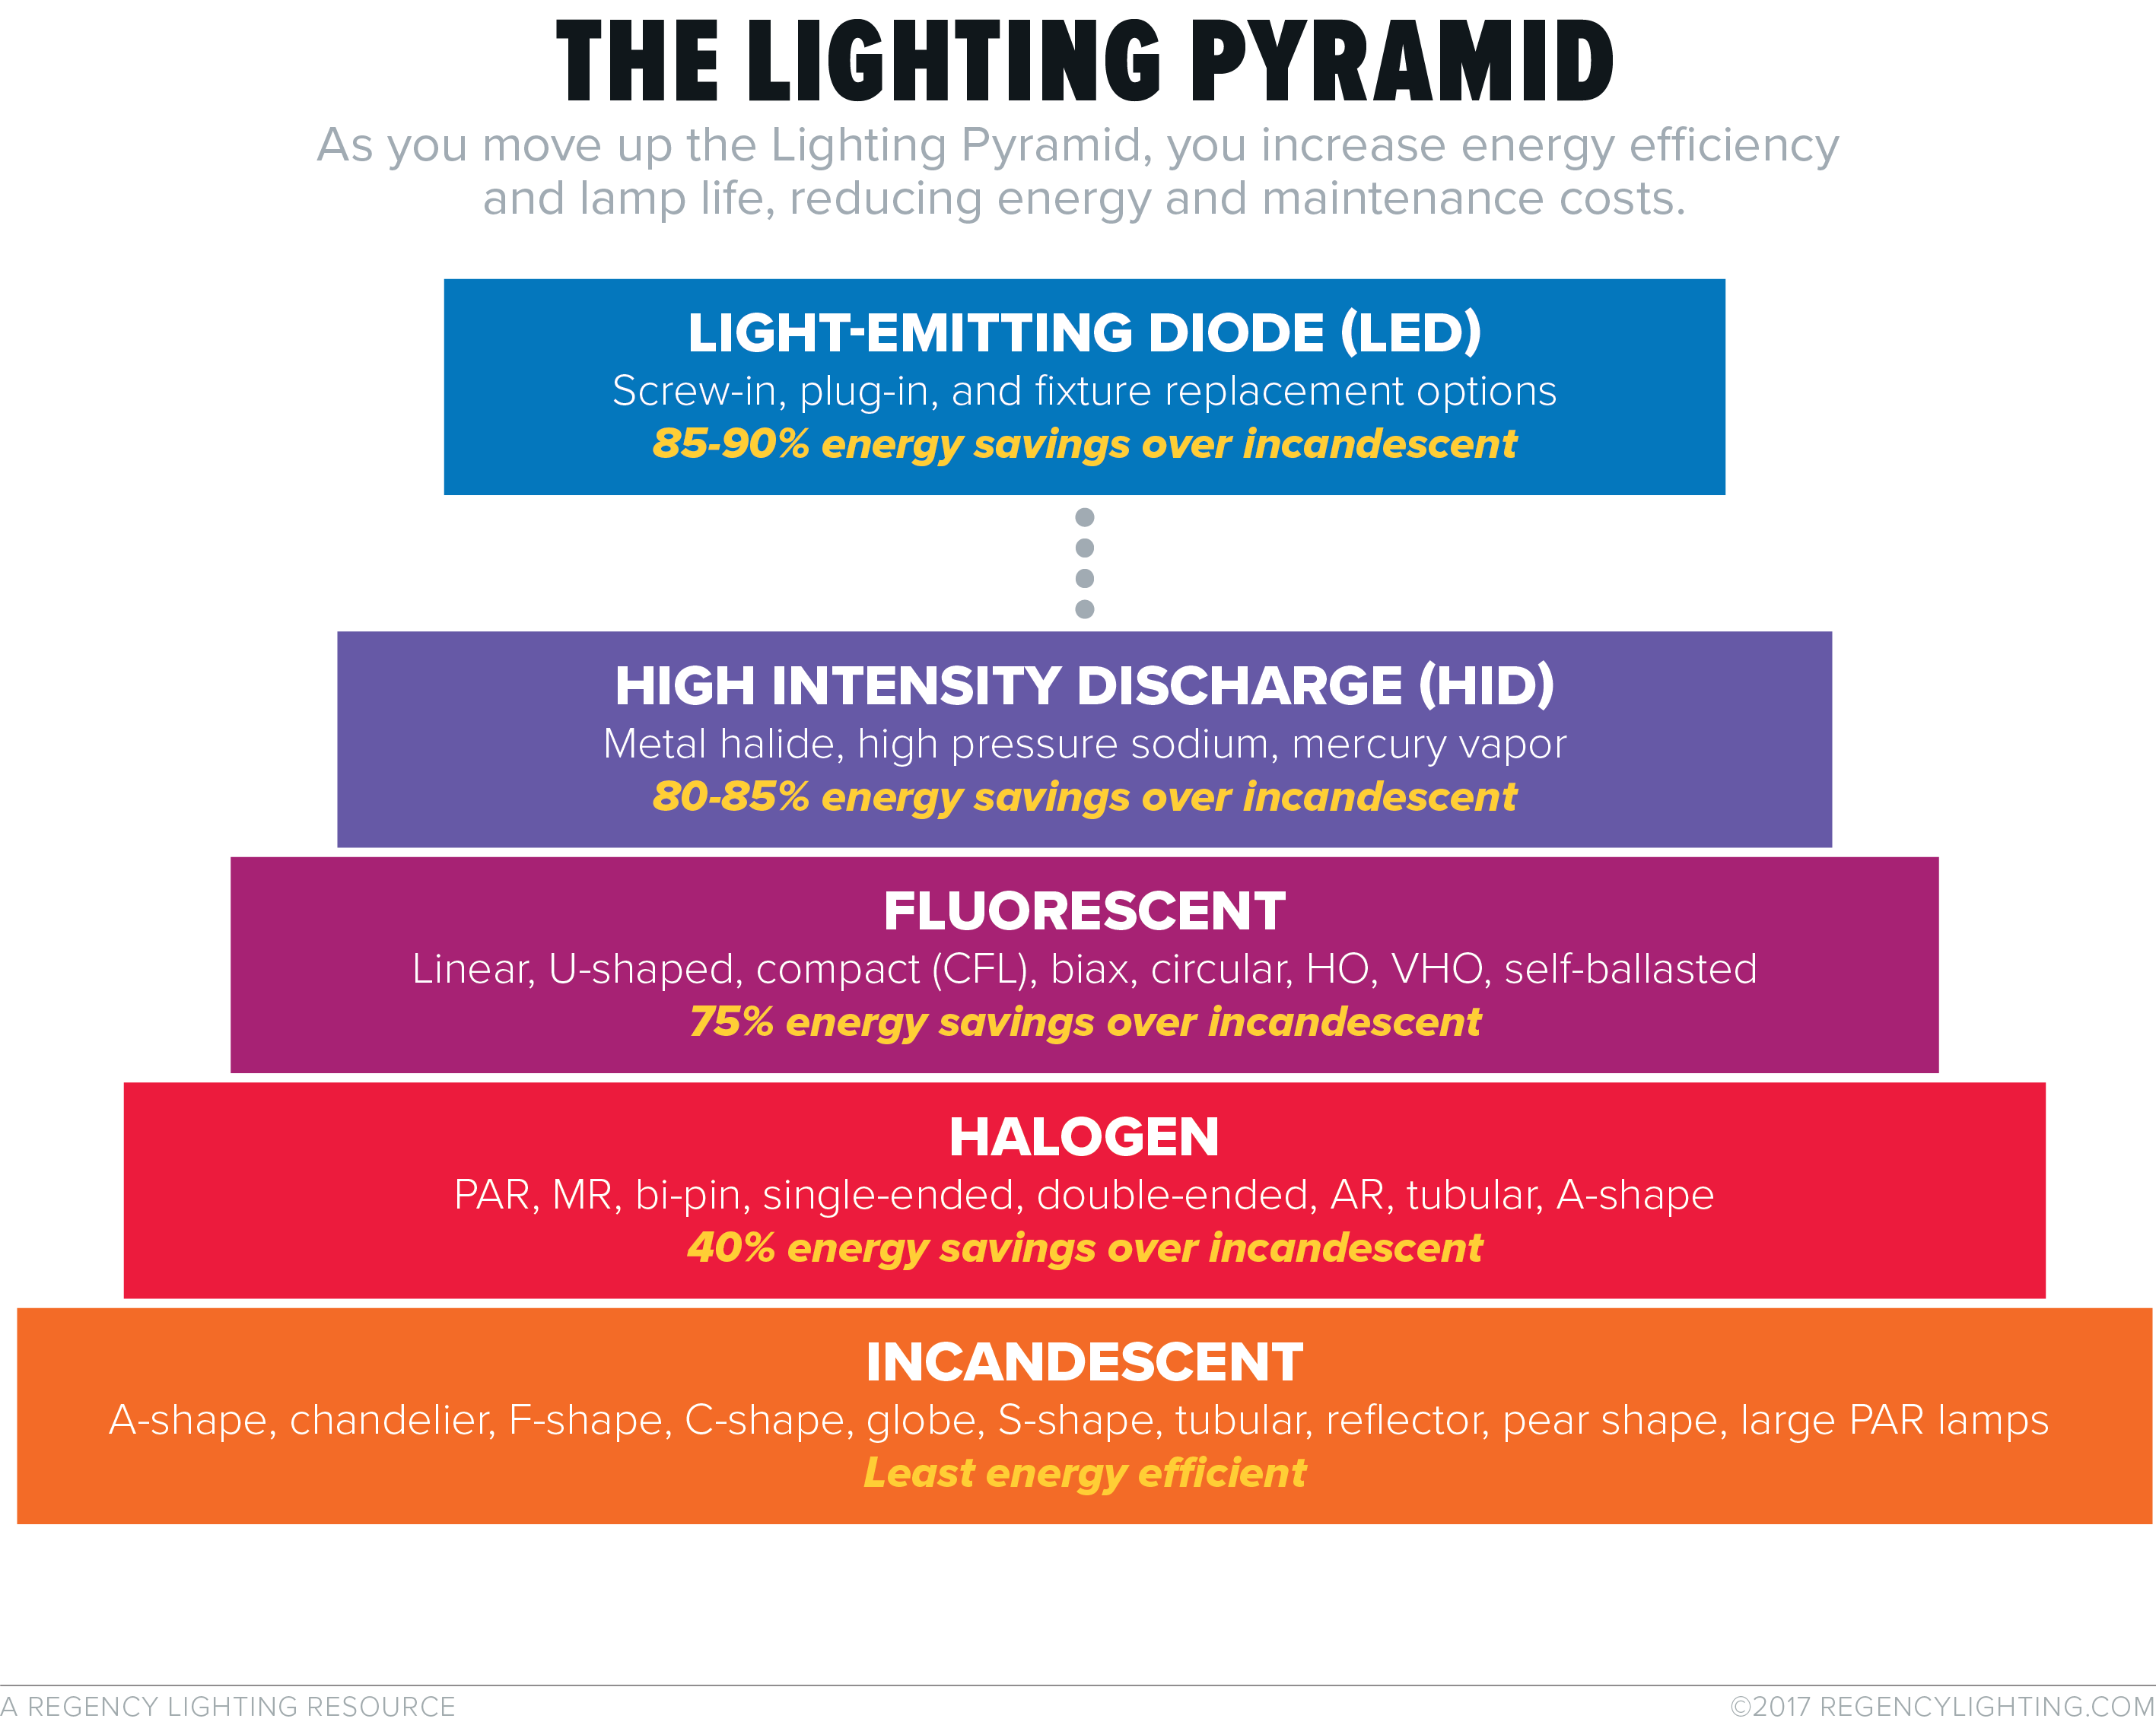 Graphic-Lighting-Pyramid-1